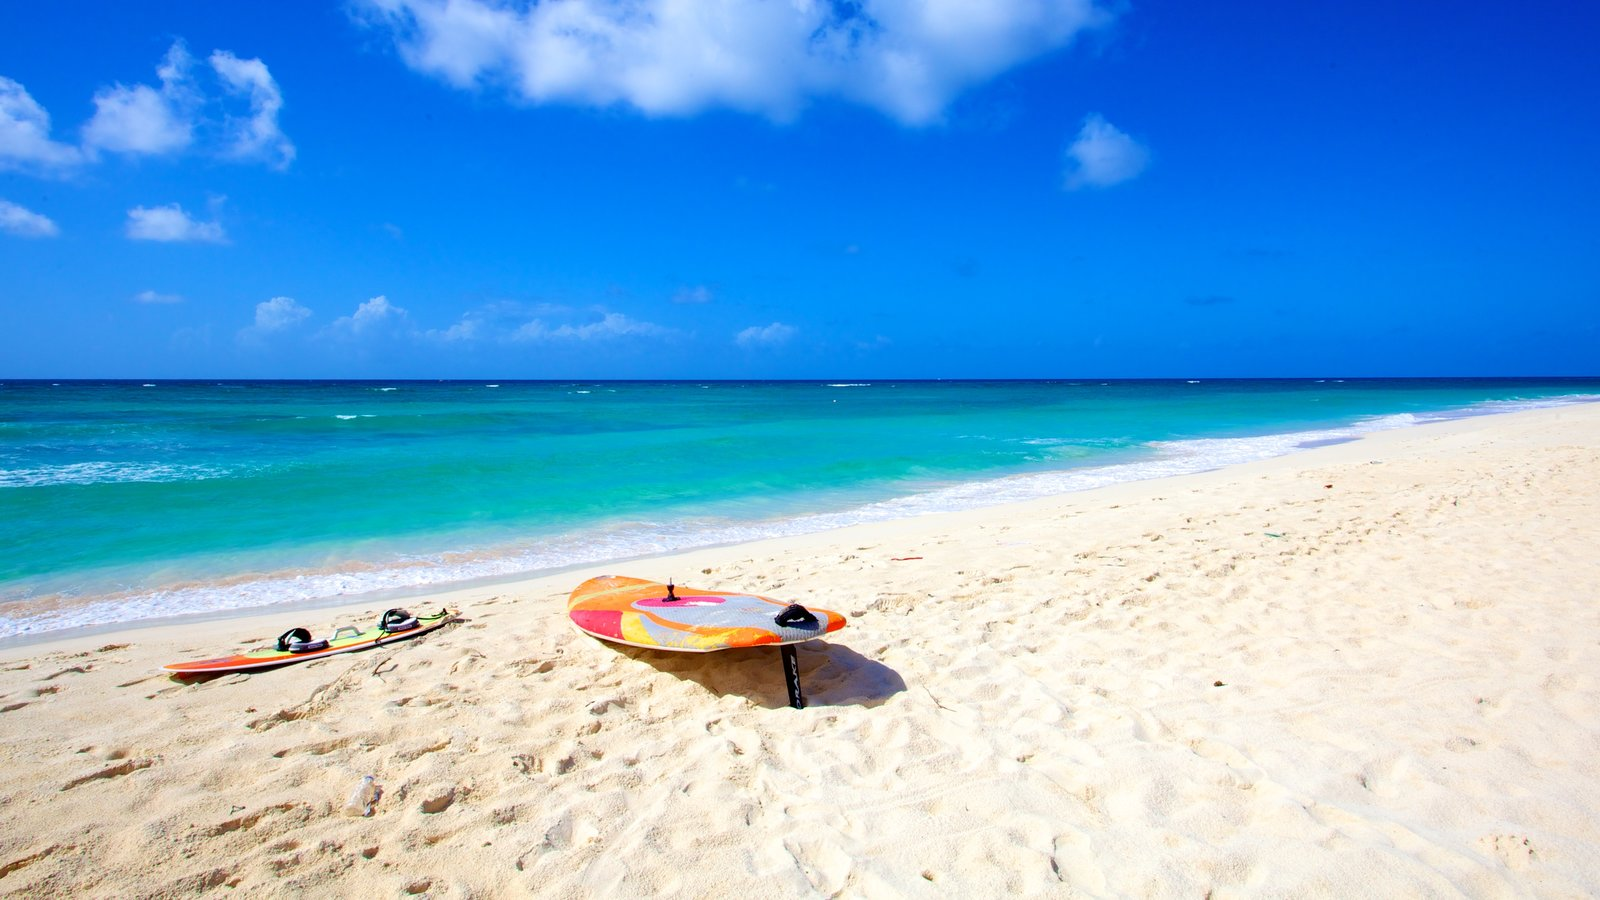 Silver Sands Beach Showing Tropical Scenes Surfing And A